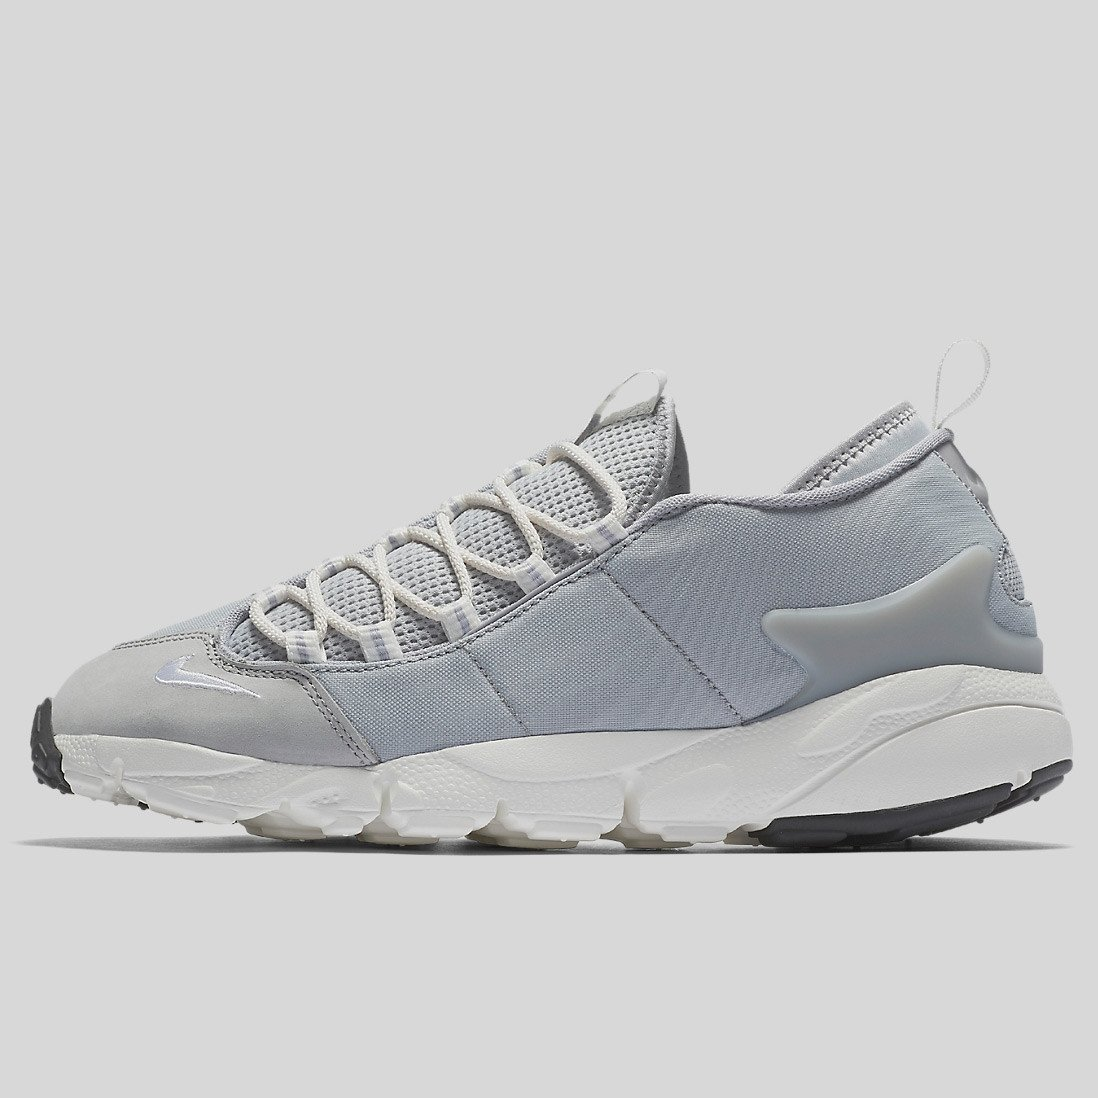 NIKE AIR FOOTSCAPE NM WOLF GREY SUMMIT WHITE Unisex Running Shoes WOLF GREY/SUMMIT WHITE 852629-003